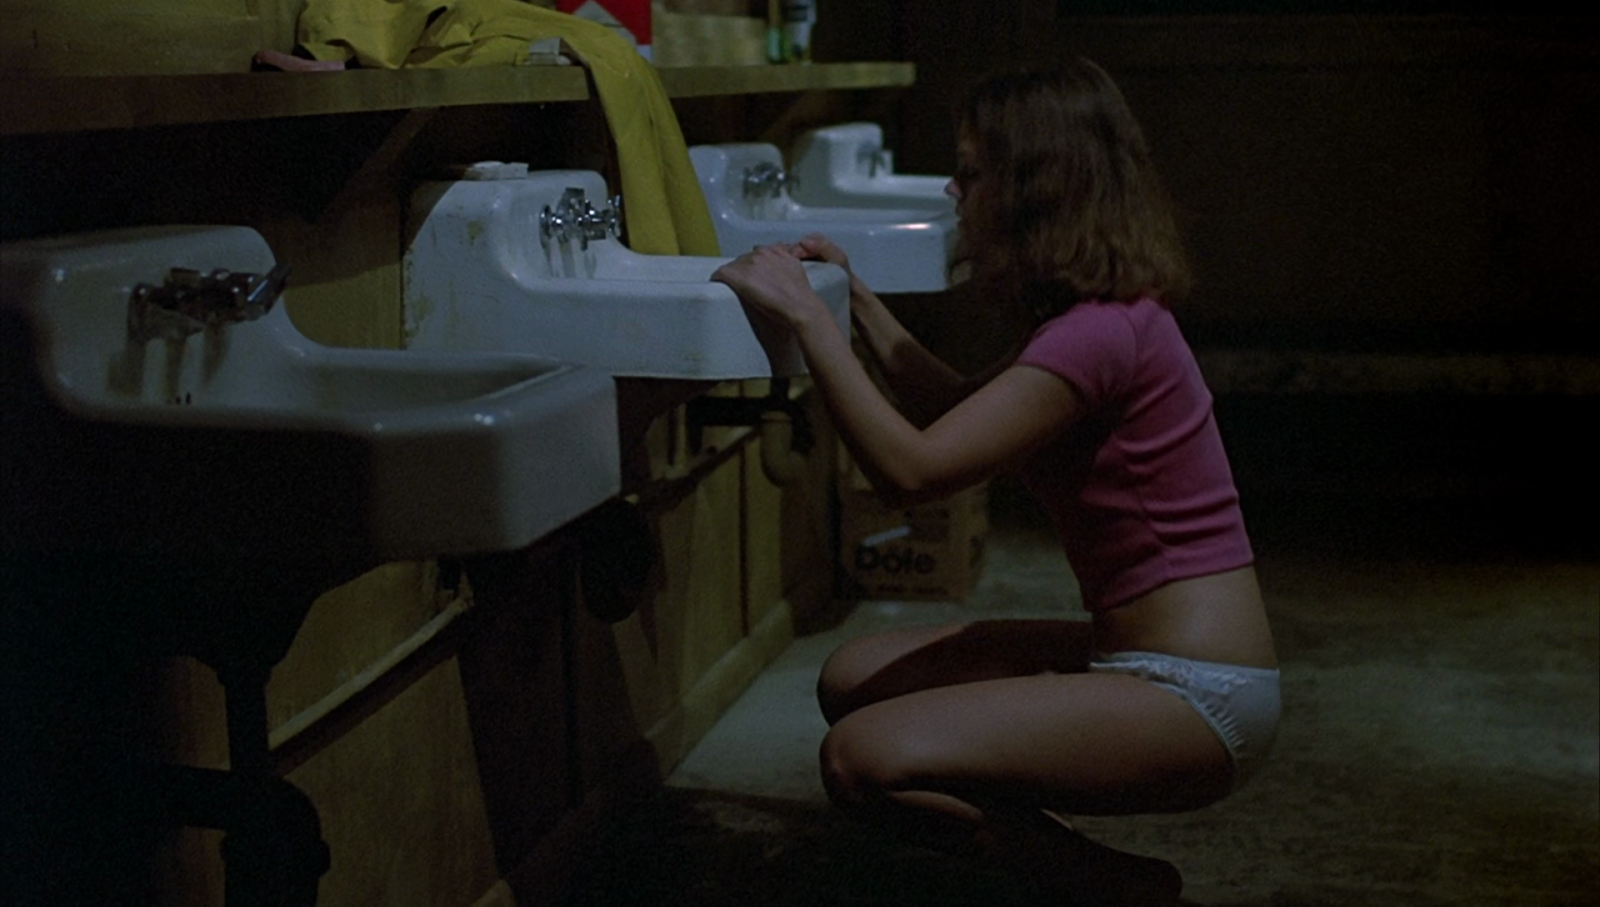 Captura de Viernes 13 (1980) Uncut 1080p BluRay x265 HEVC Dual Latino